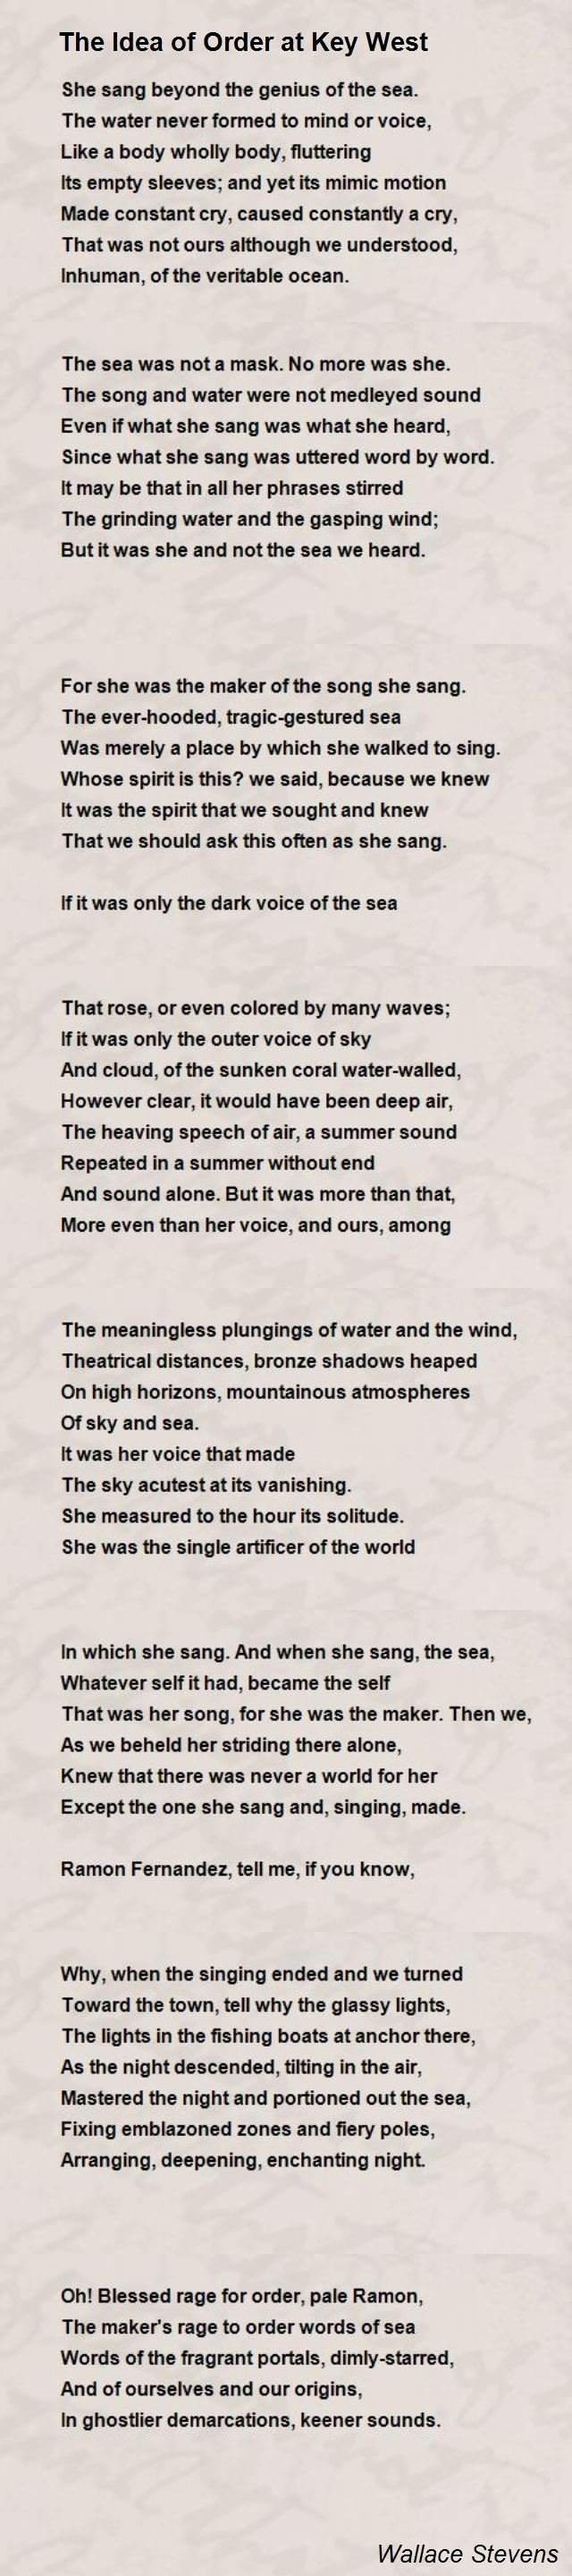 the idea of order at key west poemwallace stevens - poem hunter